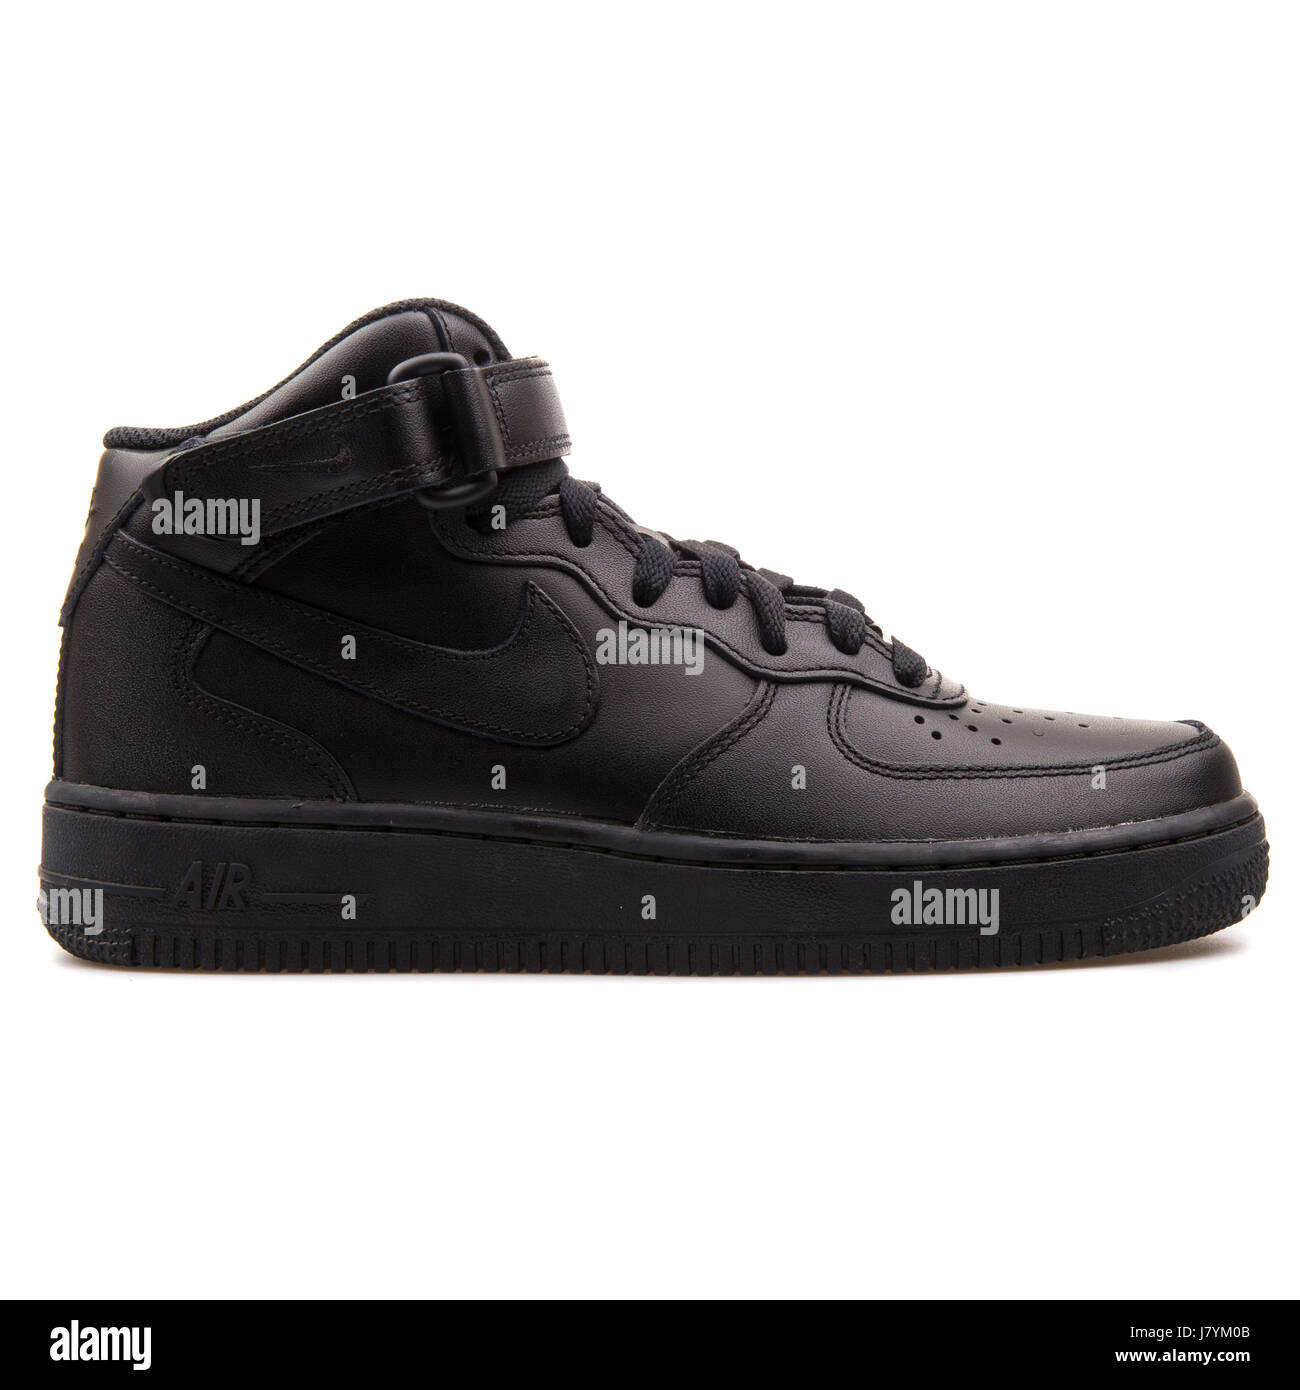 Nike WMNS Air Force 1 Mid  07 LE Black Women s Sports Sneakers - 366731-001 45973b2bb